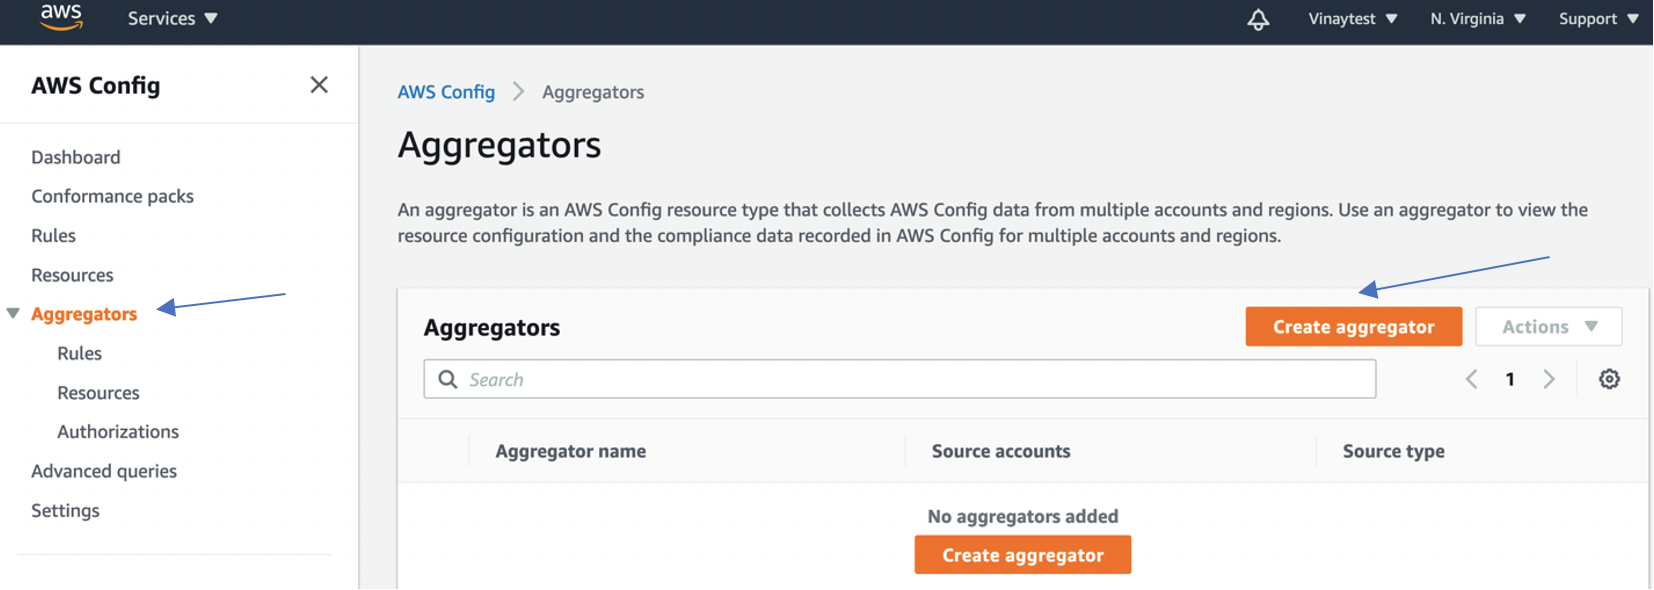 Set up an organization-wide aggregator in AWS Config using a delegated administrator account